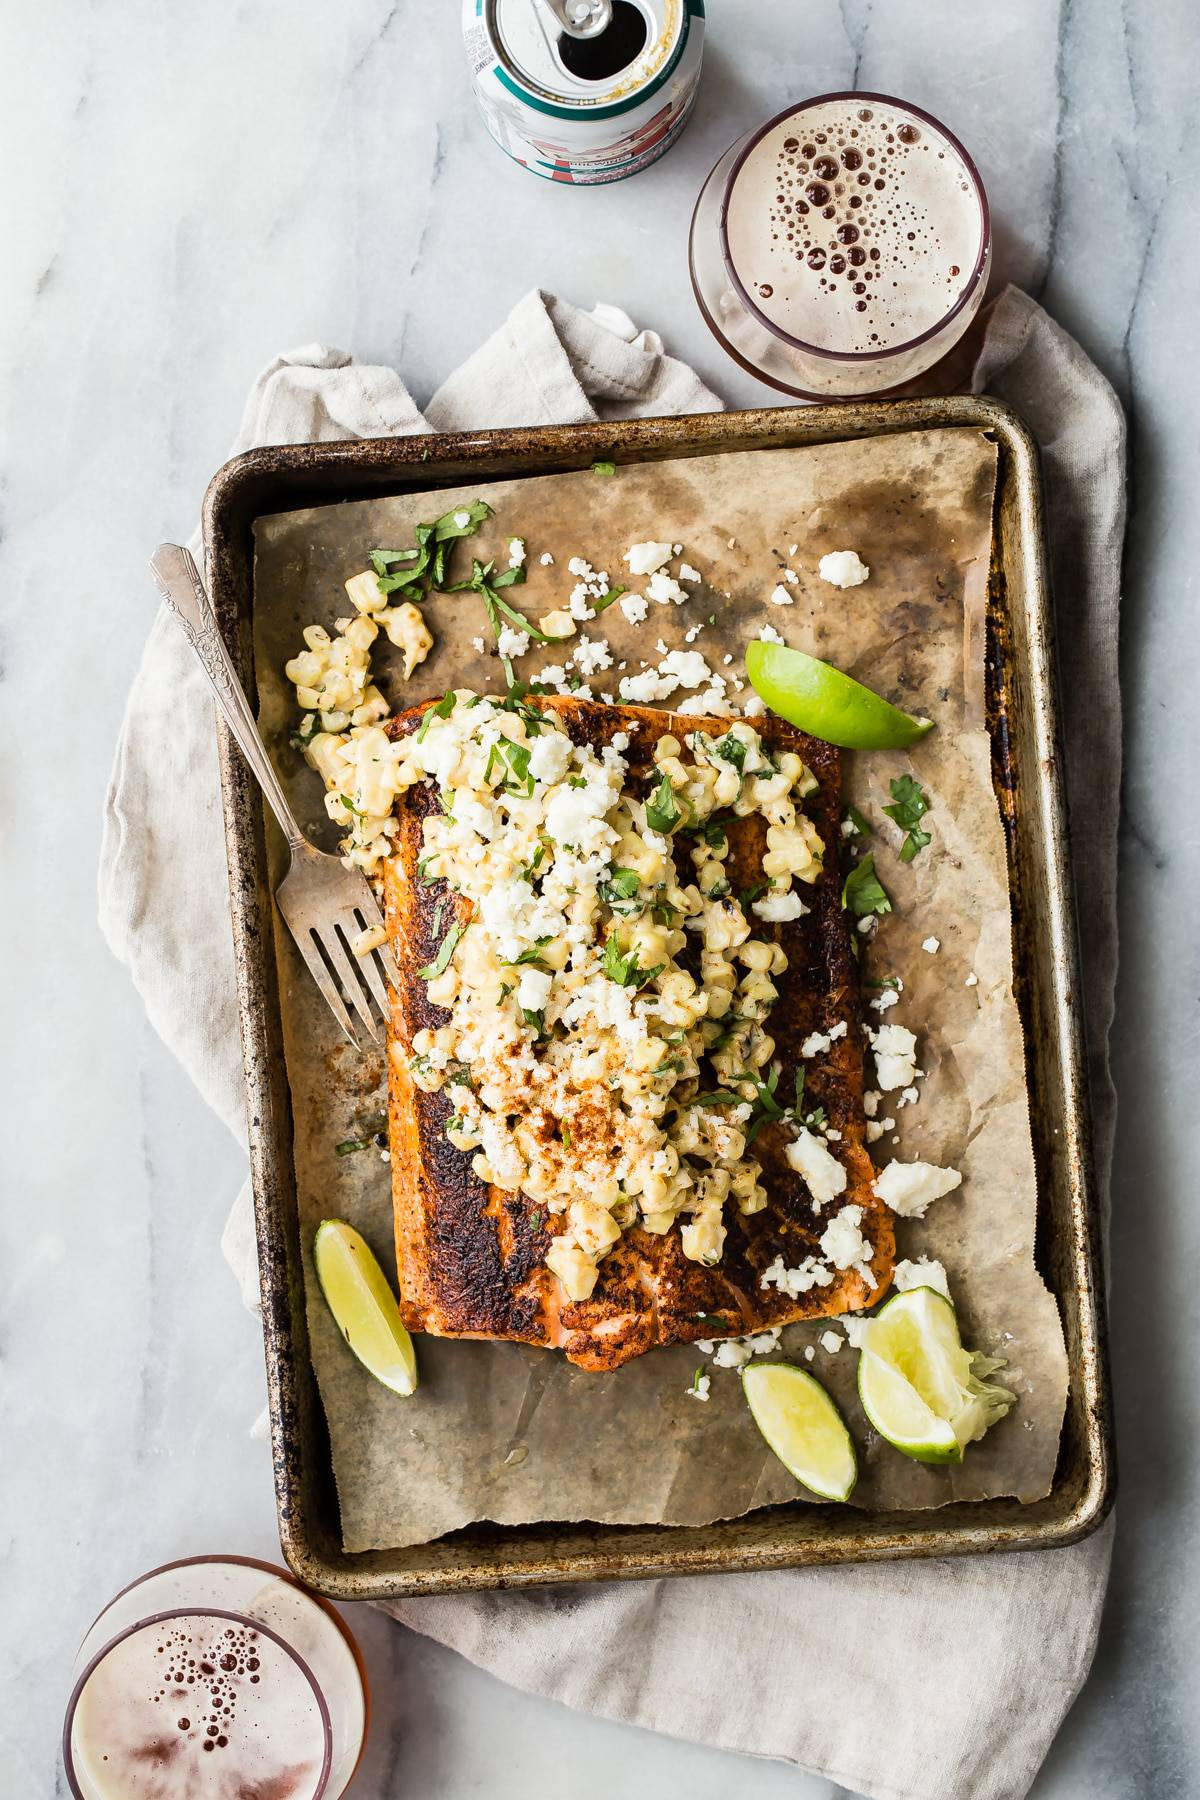 A delicious and juicy blackened salmon filet topped with creamy Mexican style street corn. This is an easy way to feed the family or a crowd of hungry friends! #salmon #dinner #familyrecipes